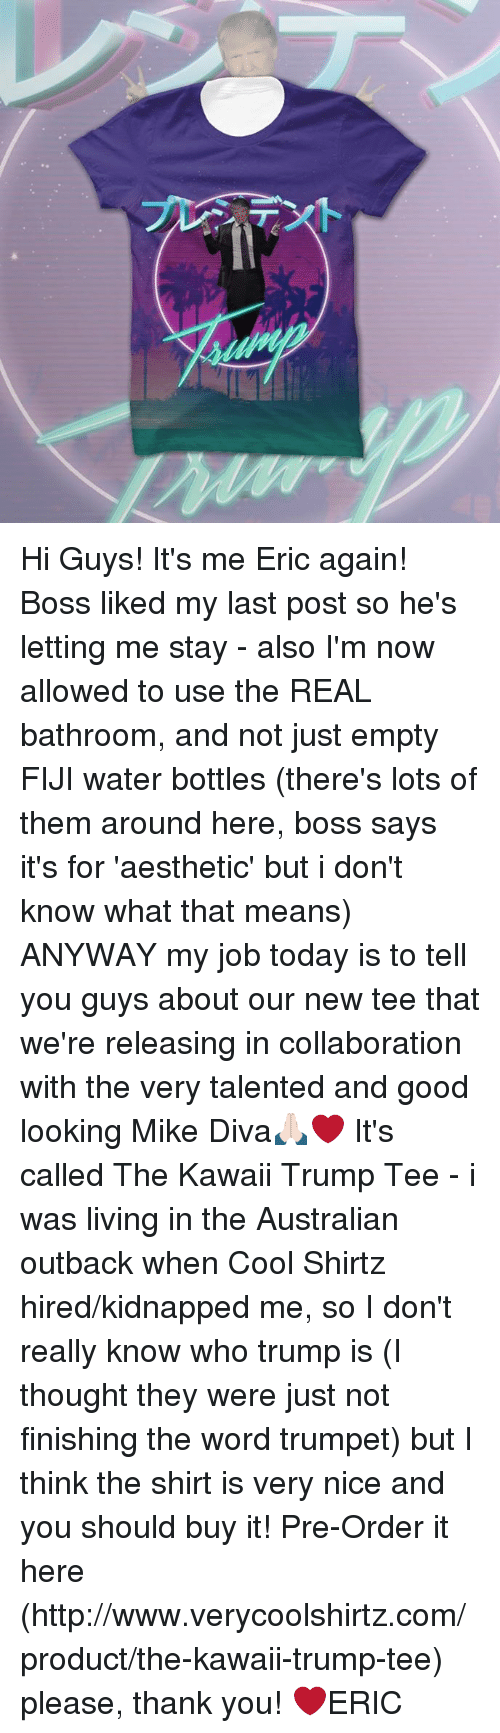 Trump: Hi Guys! It's me Eric again! Boss liked my last post so he's letting me stay - also I'm now allowed to use the REAL bathroom, and not just empty FIJI water bottles (there's lots of them around here, boss says it's for 'aesthetic' but i don't know what that means)  ANYWAY my job today is to tell you guys about our new tee that we're releasing in collaboration with the very talented and good looking Mike Diva🙏🏻❤️  It's called The Kawaii Trump Tee - i was living in the Australian outback when Cool Shirtz hired/kidnapped me, so I don't really know who trump is (I thought they were just not finishing the word trumpet) but I think the shirt is very nice and you should buy it!  Pre-Order it here (http://www.verycoolshirtz.com/product/the-kawaii-trump-tee) please, thank you!   ❤️ERIC